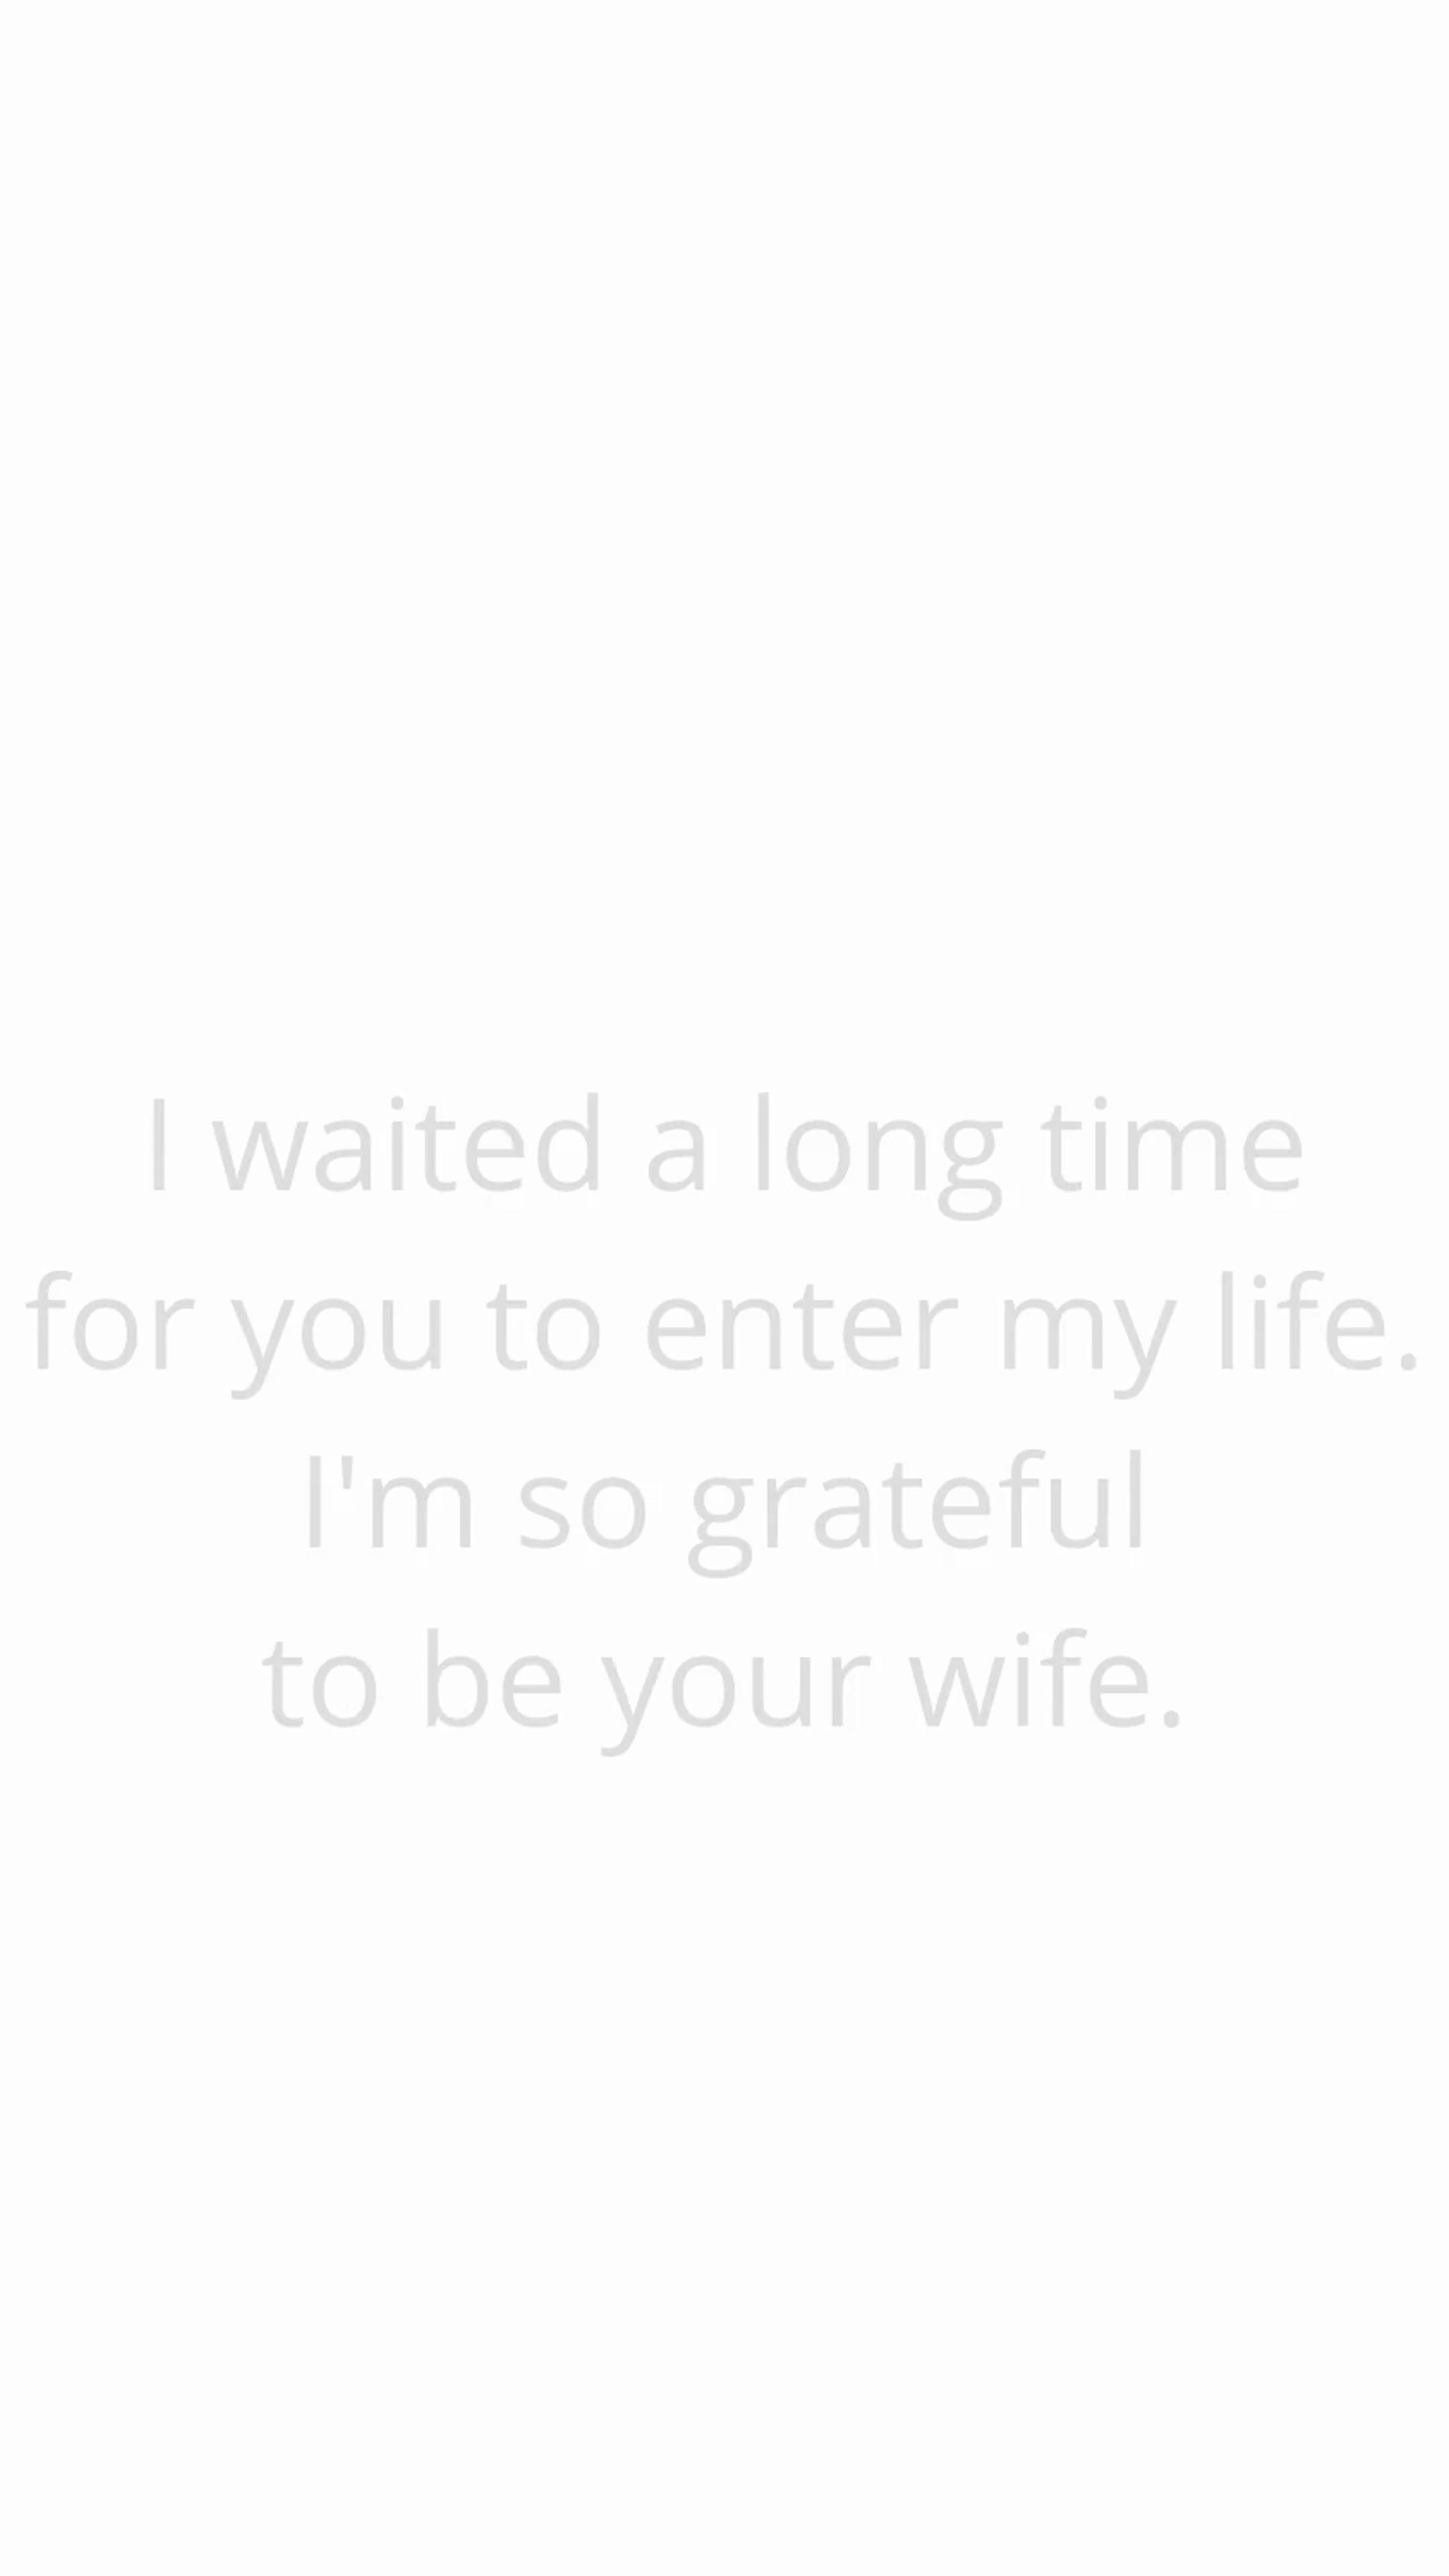 💕The Ultimate Husband Quotes-Love Quotes For Him That Will Warm Your Heart💓